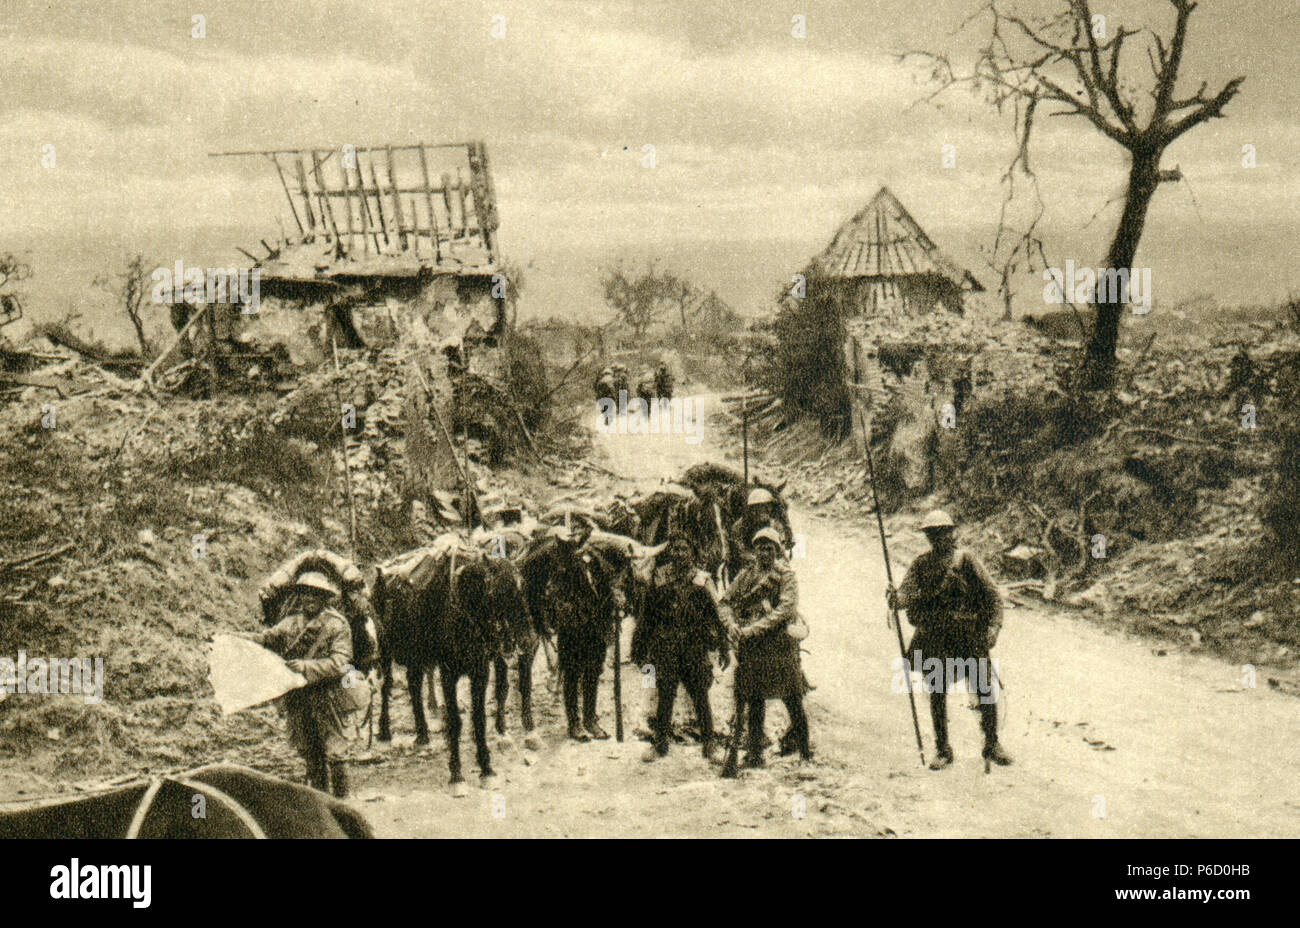 world war i, cavalry, British soldiers, ww1, wwi, world war one - Stock Image